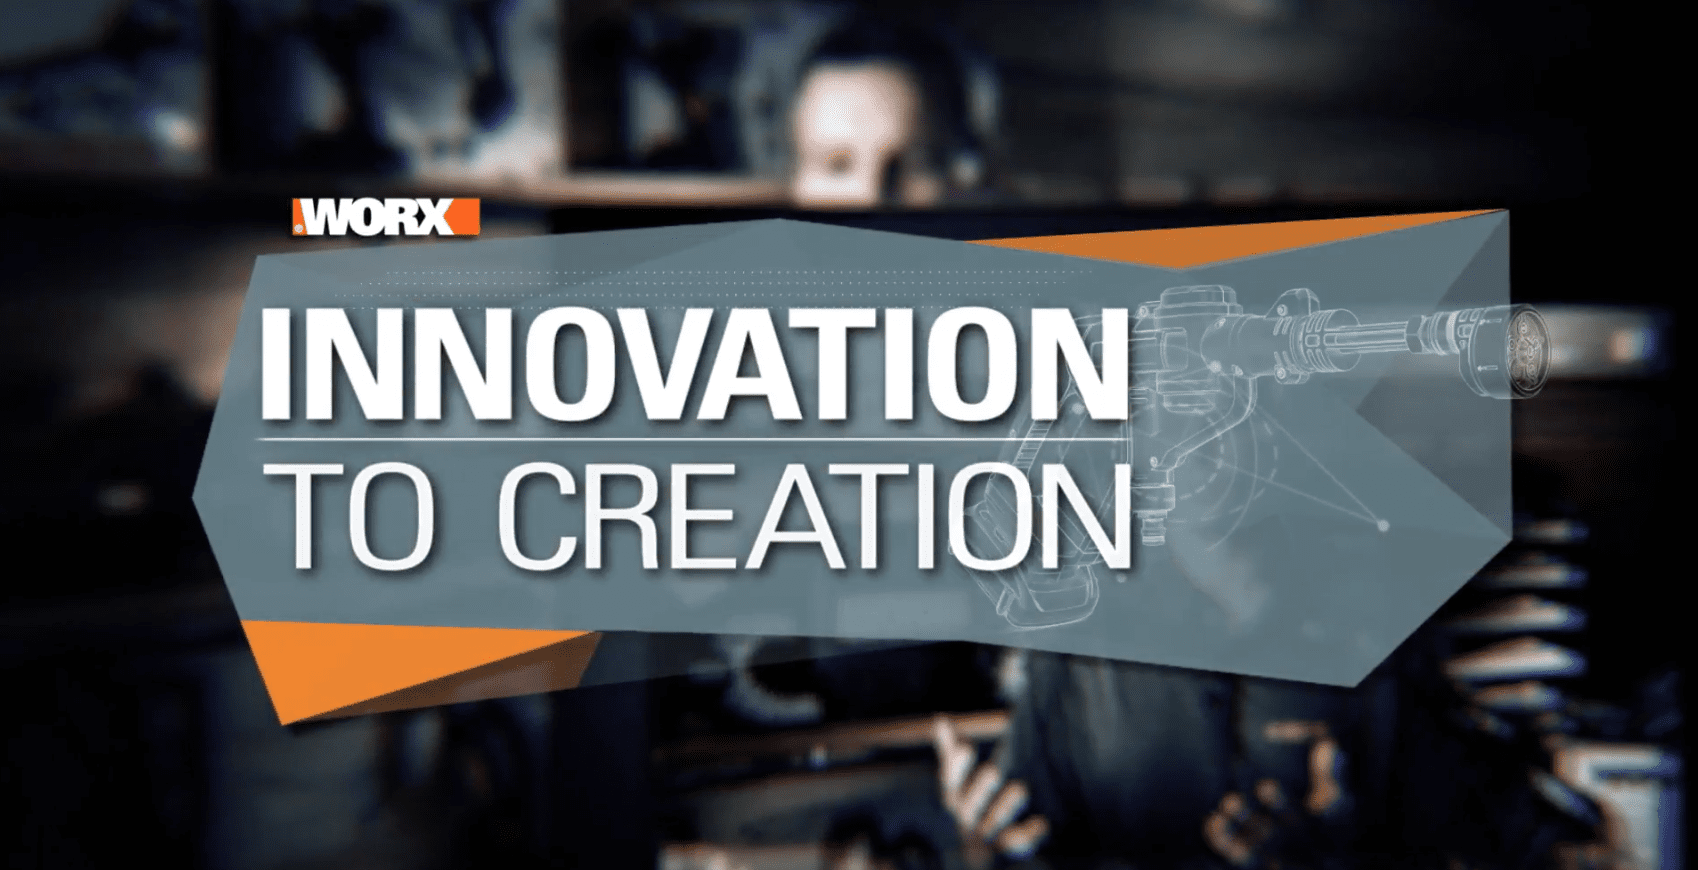 Hydroshot Innovation to Creation